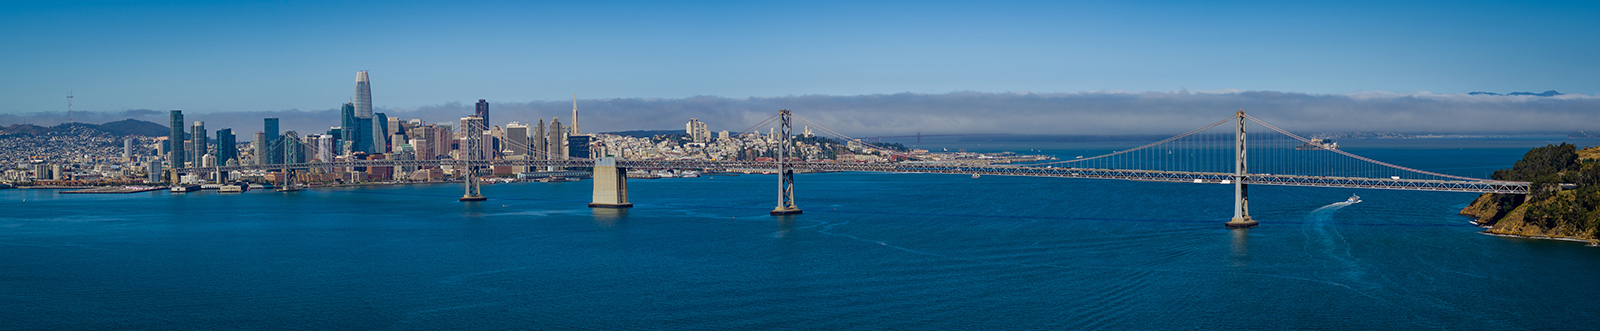 Aerial Panoramic Photo of San Francisco with Bay Bridge from the Oakland Perspective